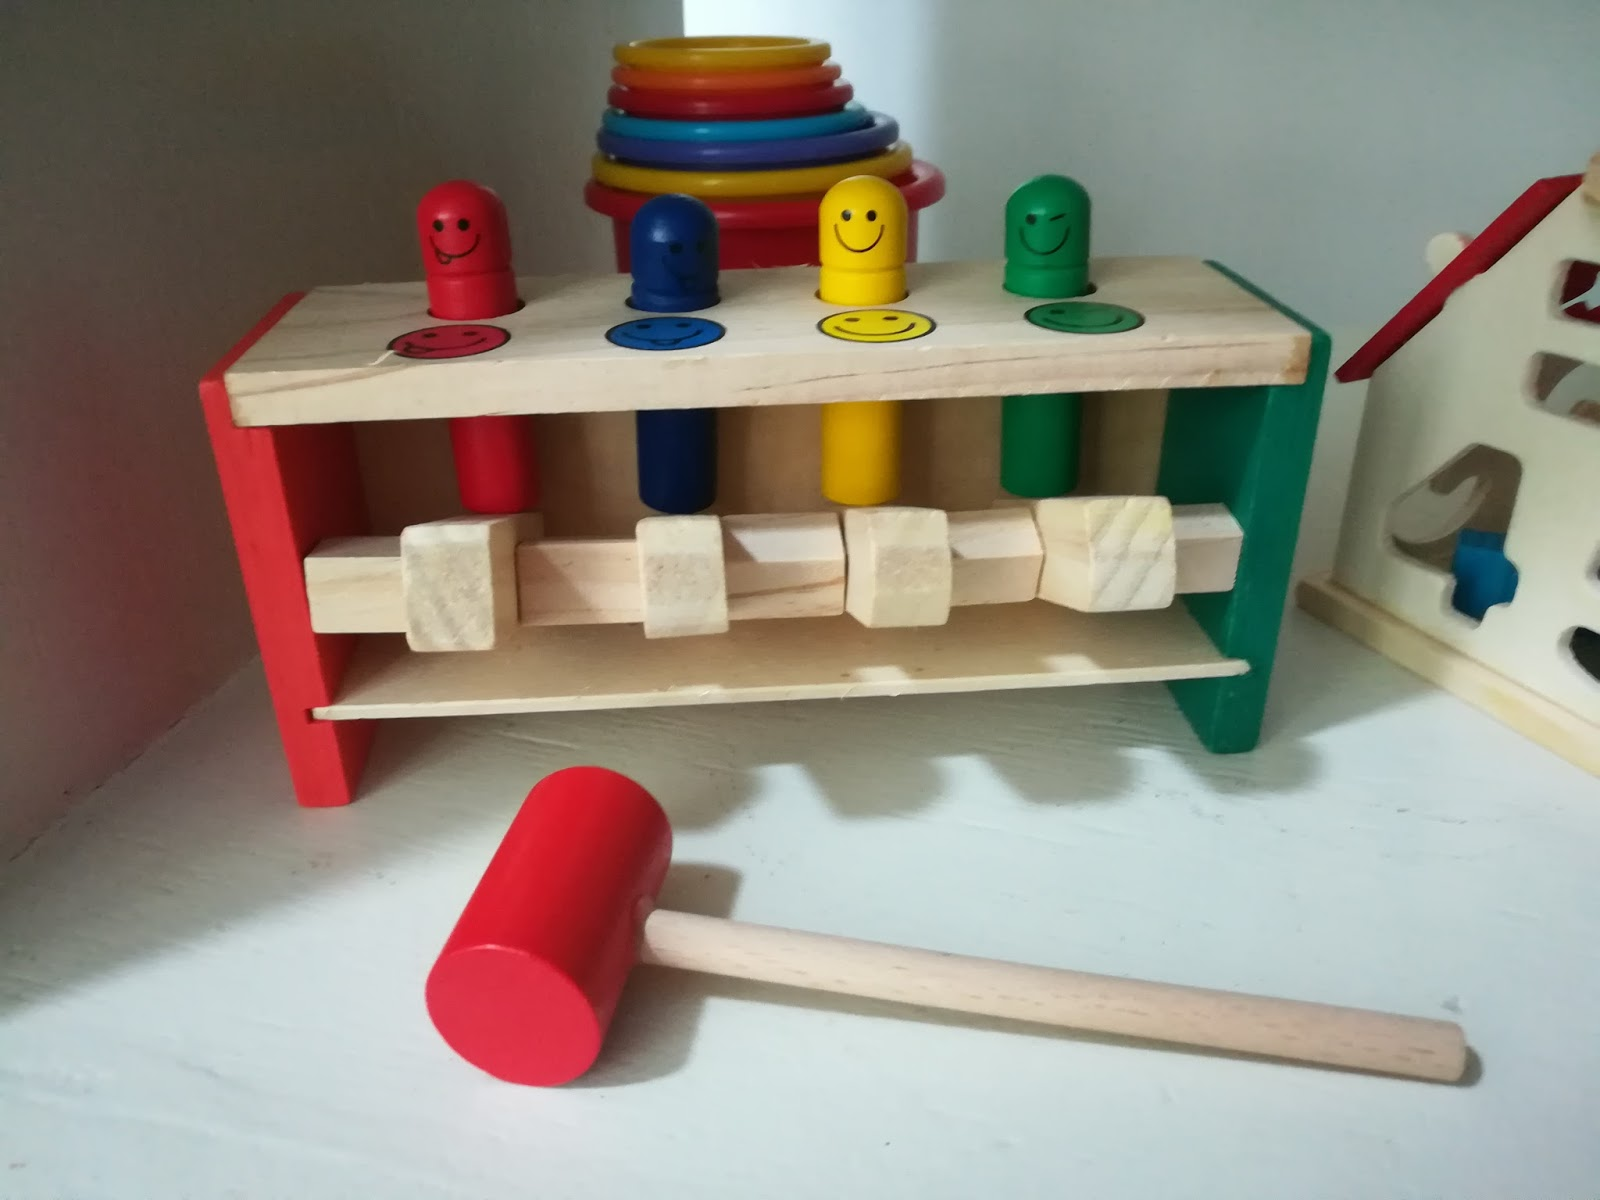 Where to find wooden toys for toddlers and kids online